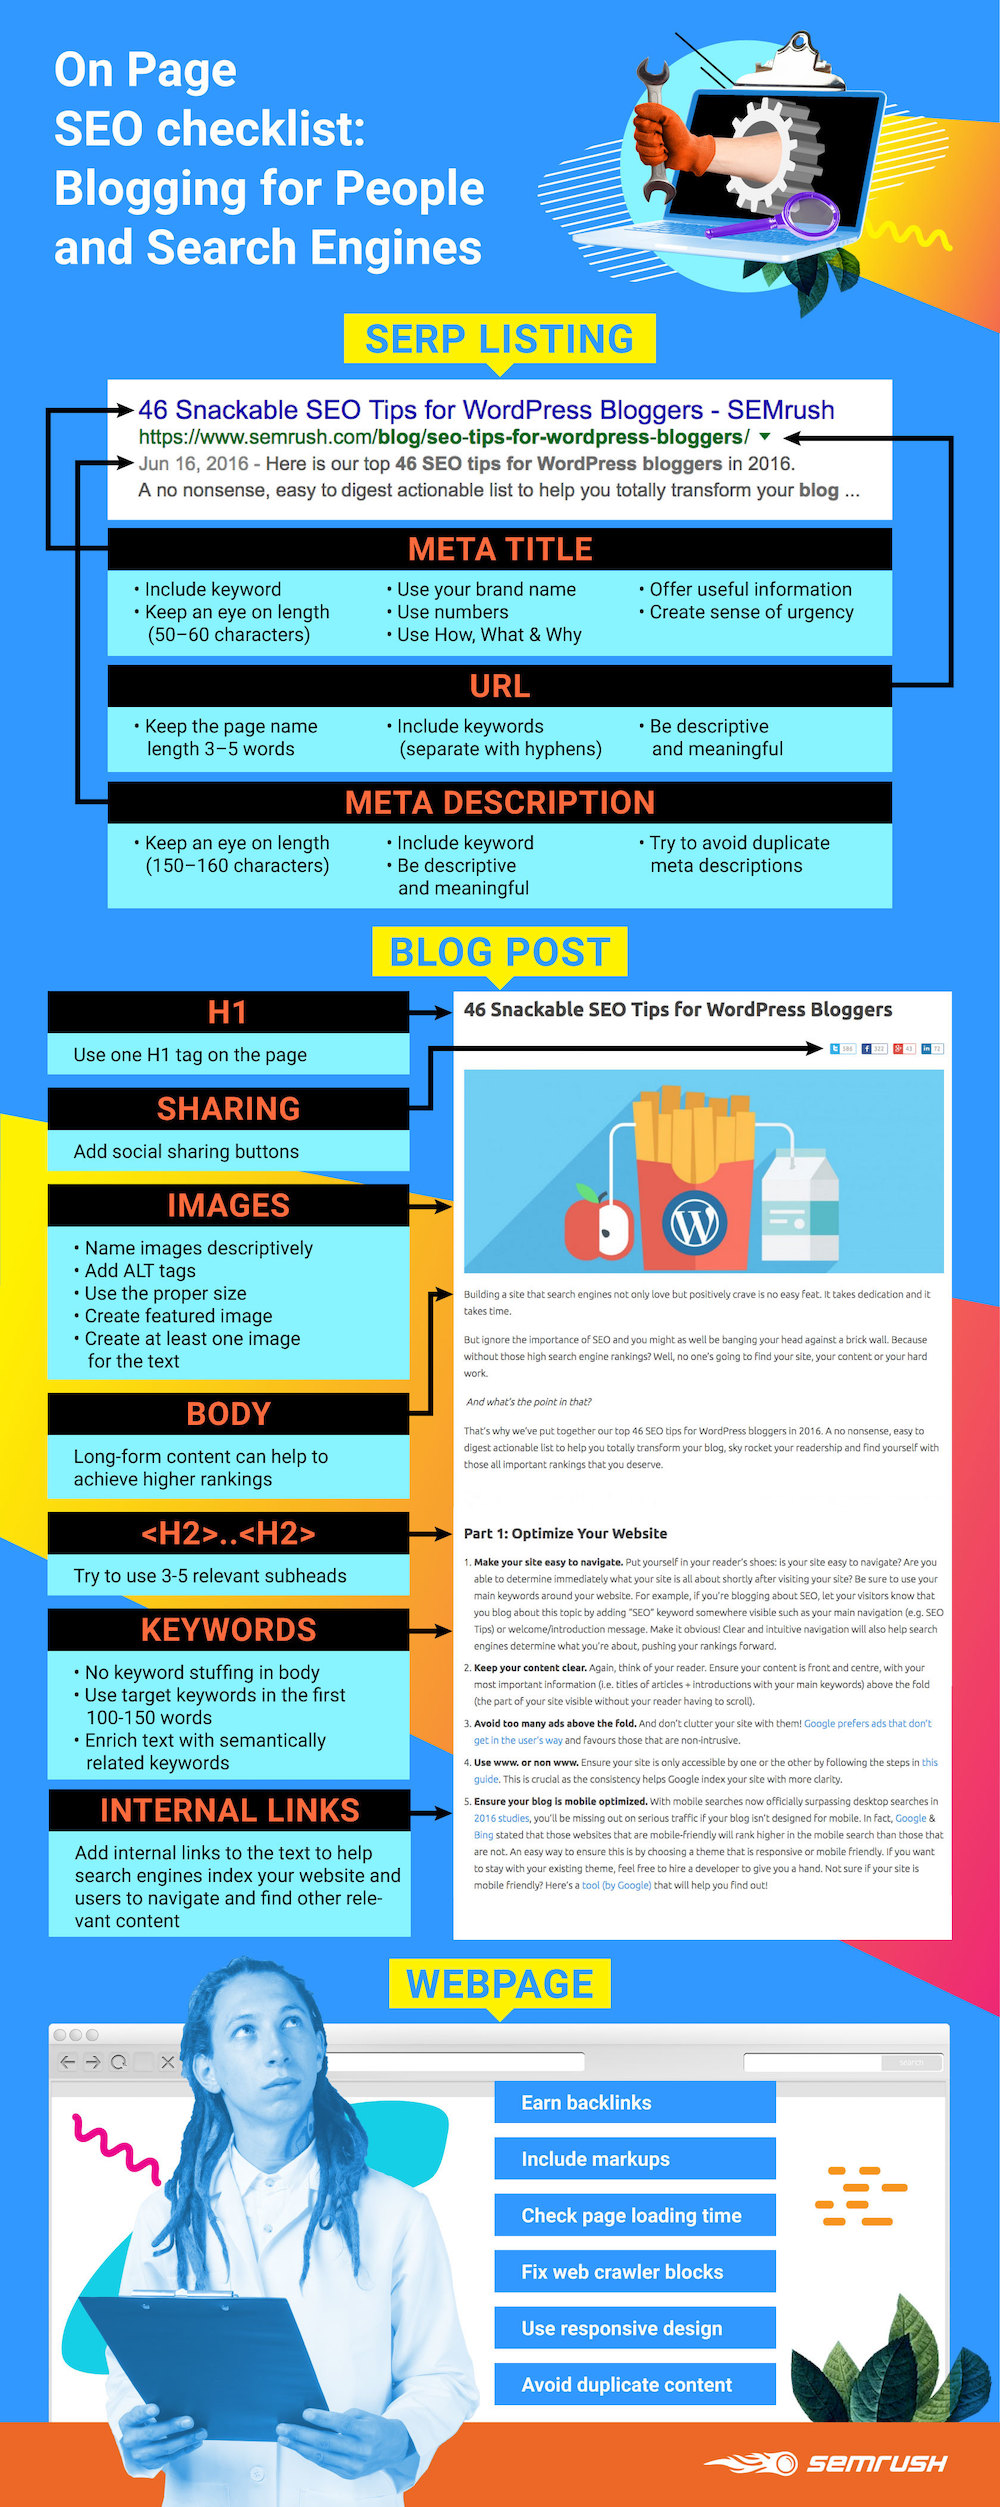 infographic showing all the steps for on-page SEO